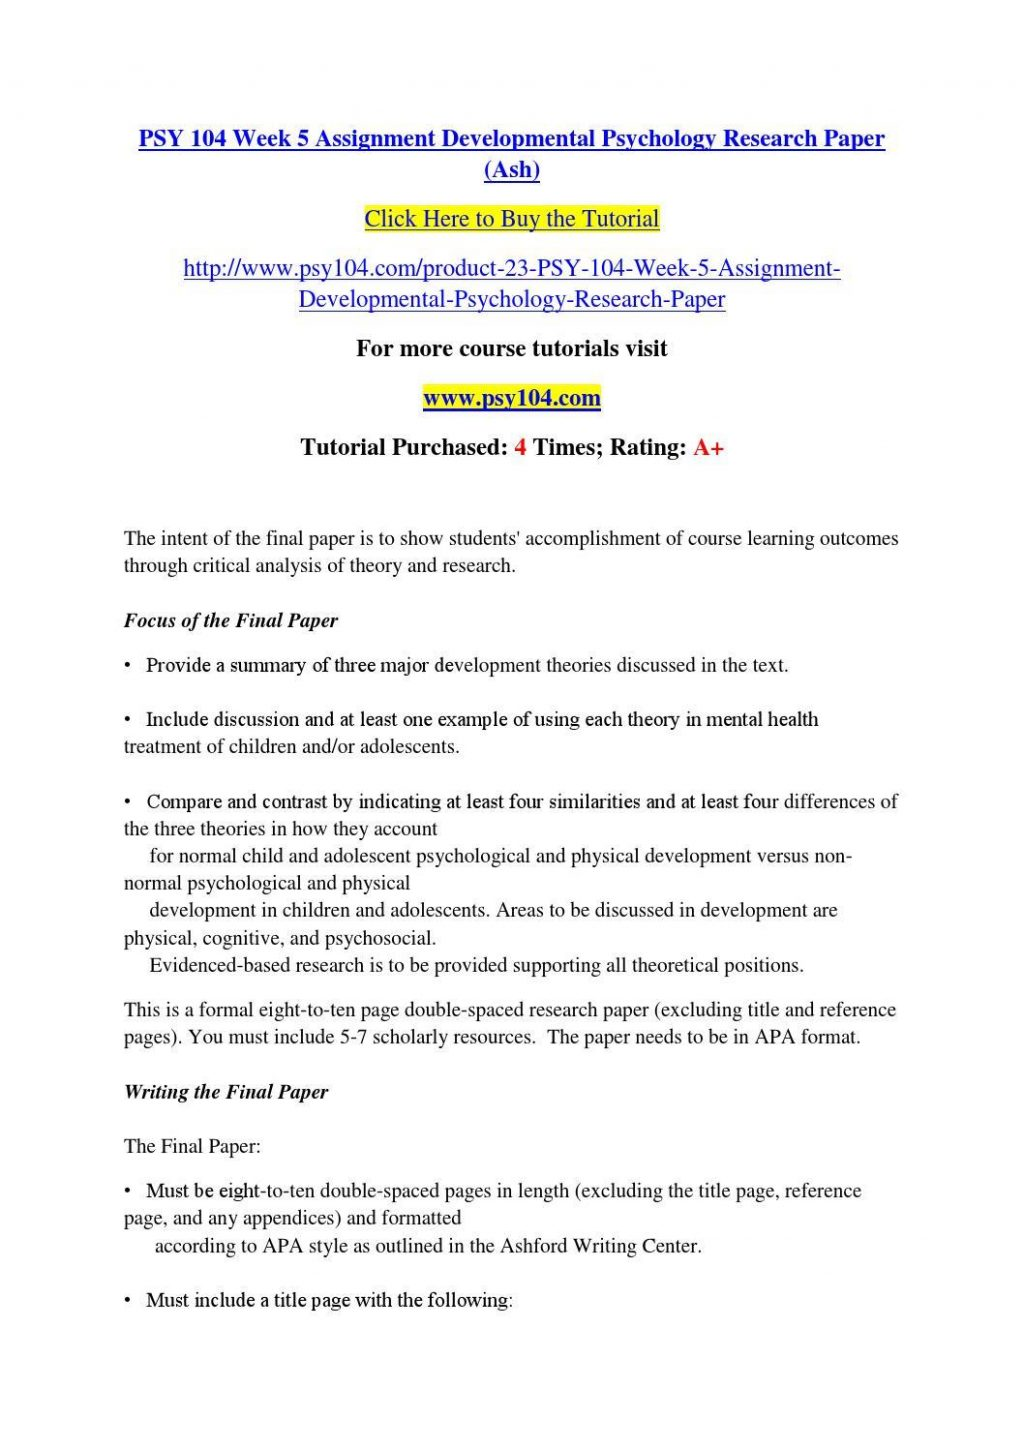 003 Developmental Psychology Essay Ideas Structure Psychological20ent Paper Topics Pdf20 1024x1449 For Dreaded Research Potential Full